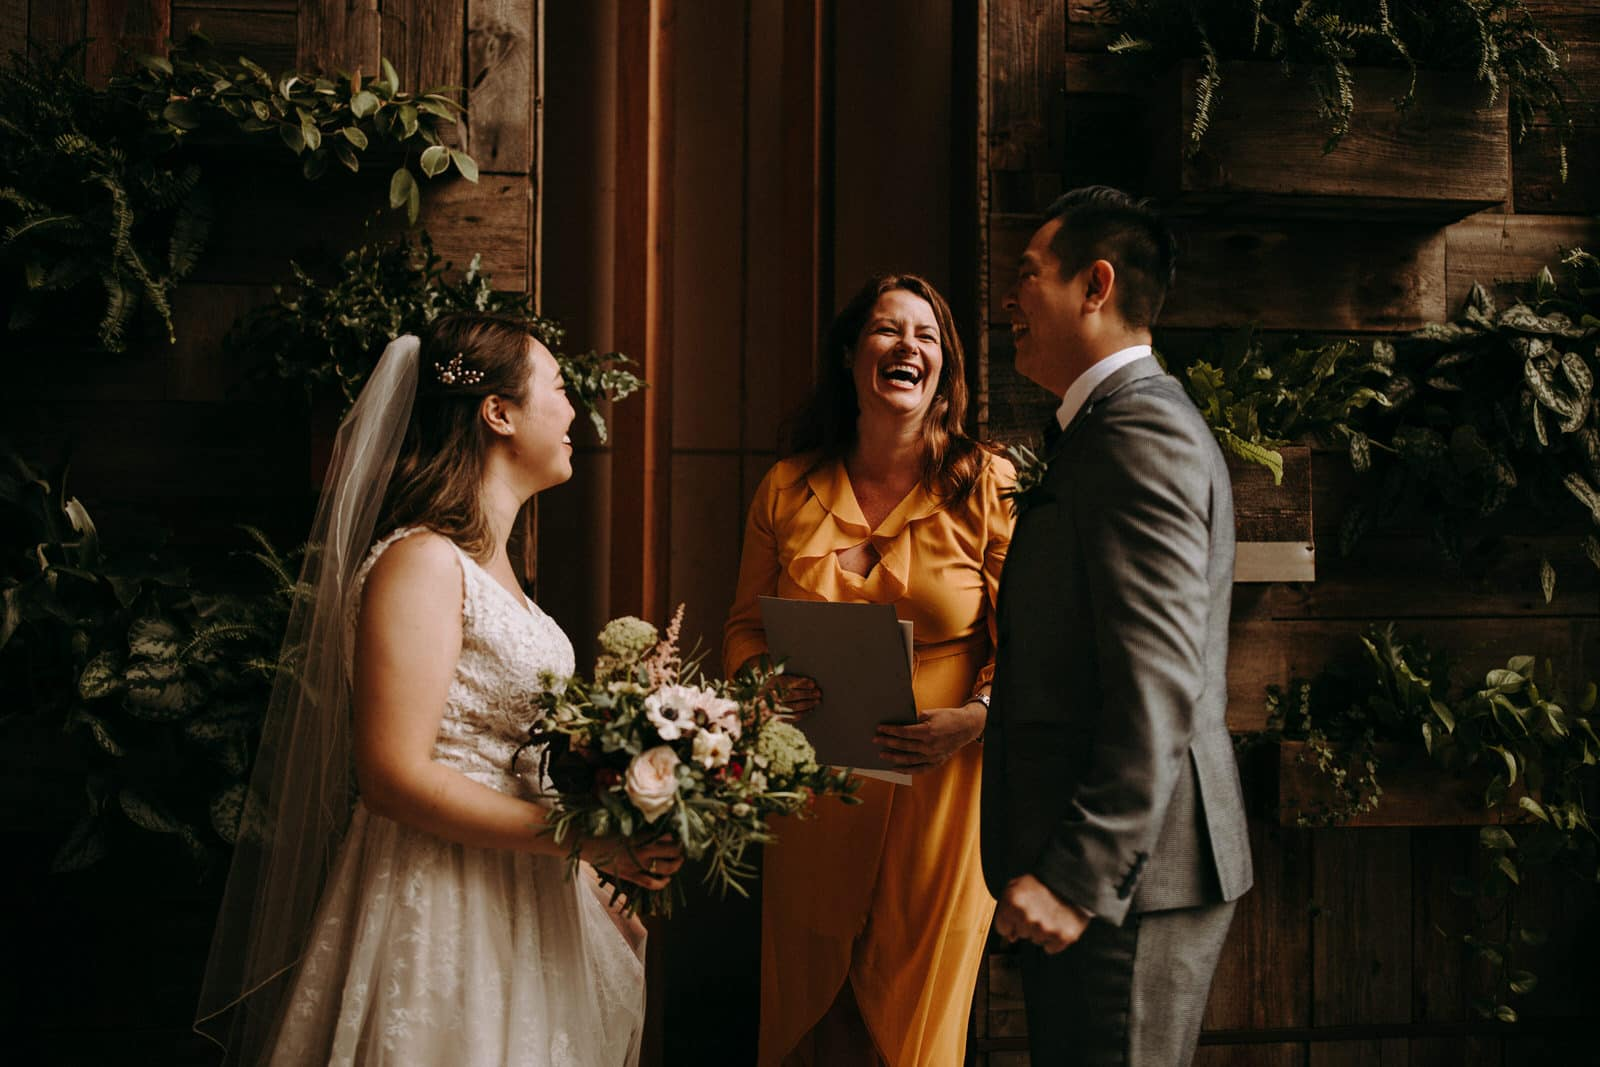 The wedding couple is about to get married and is laughing at each other with the one marrying them.